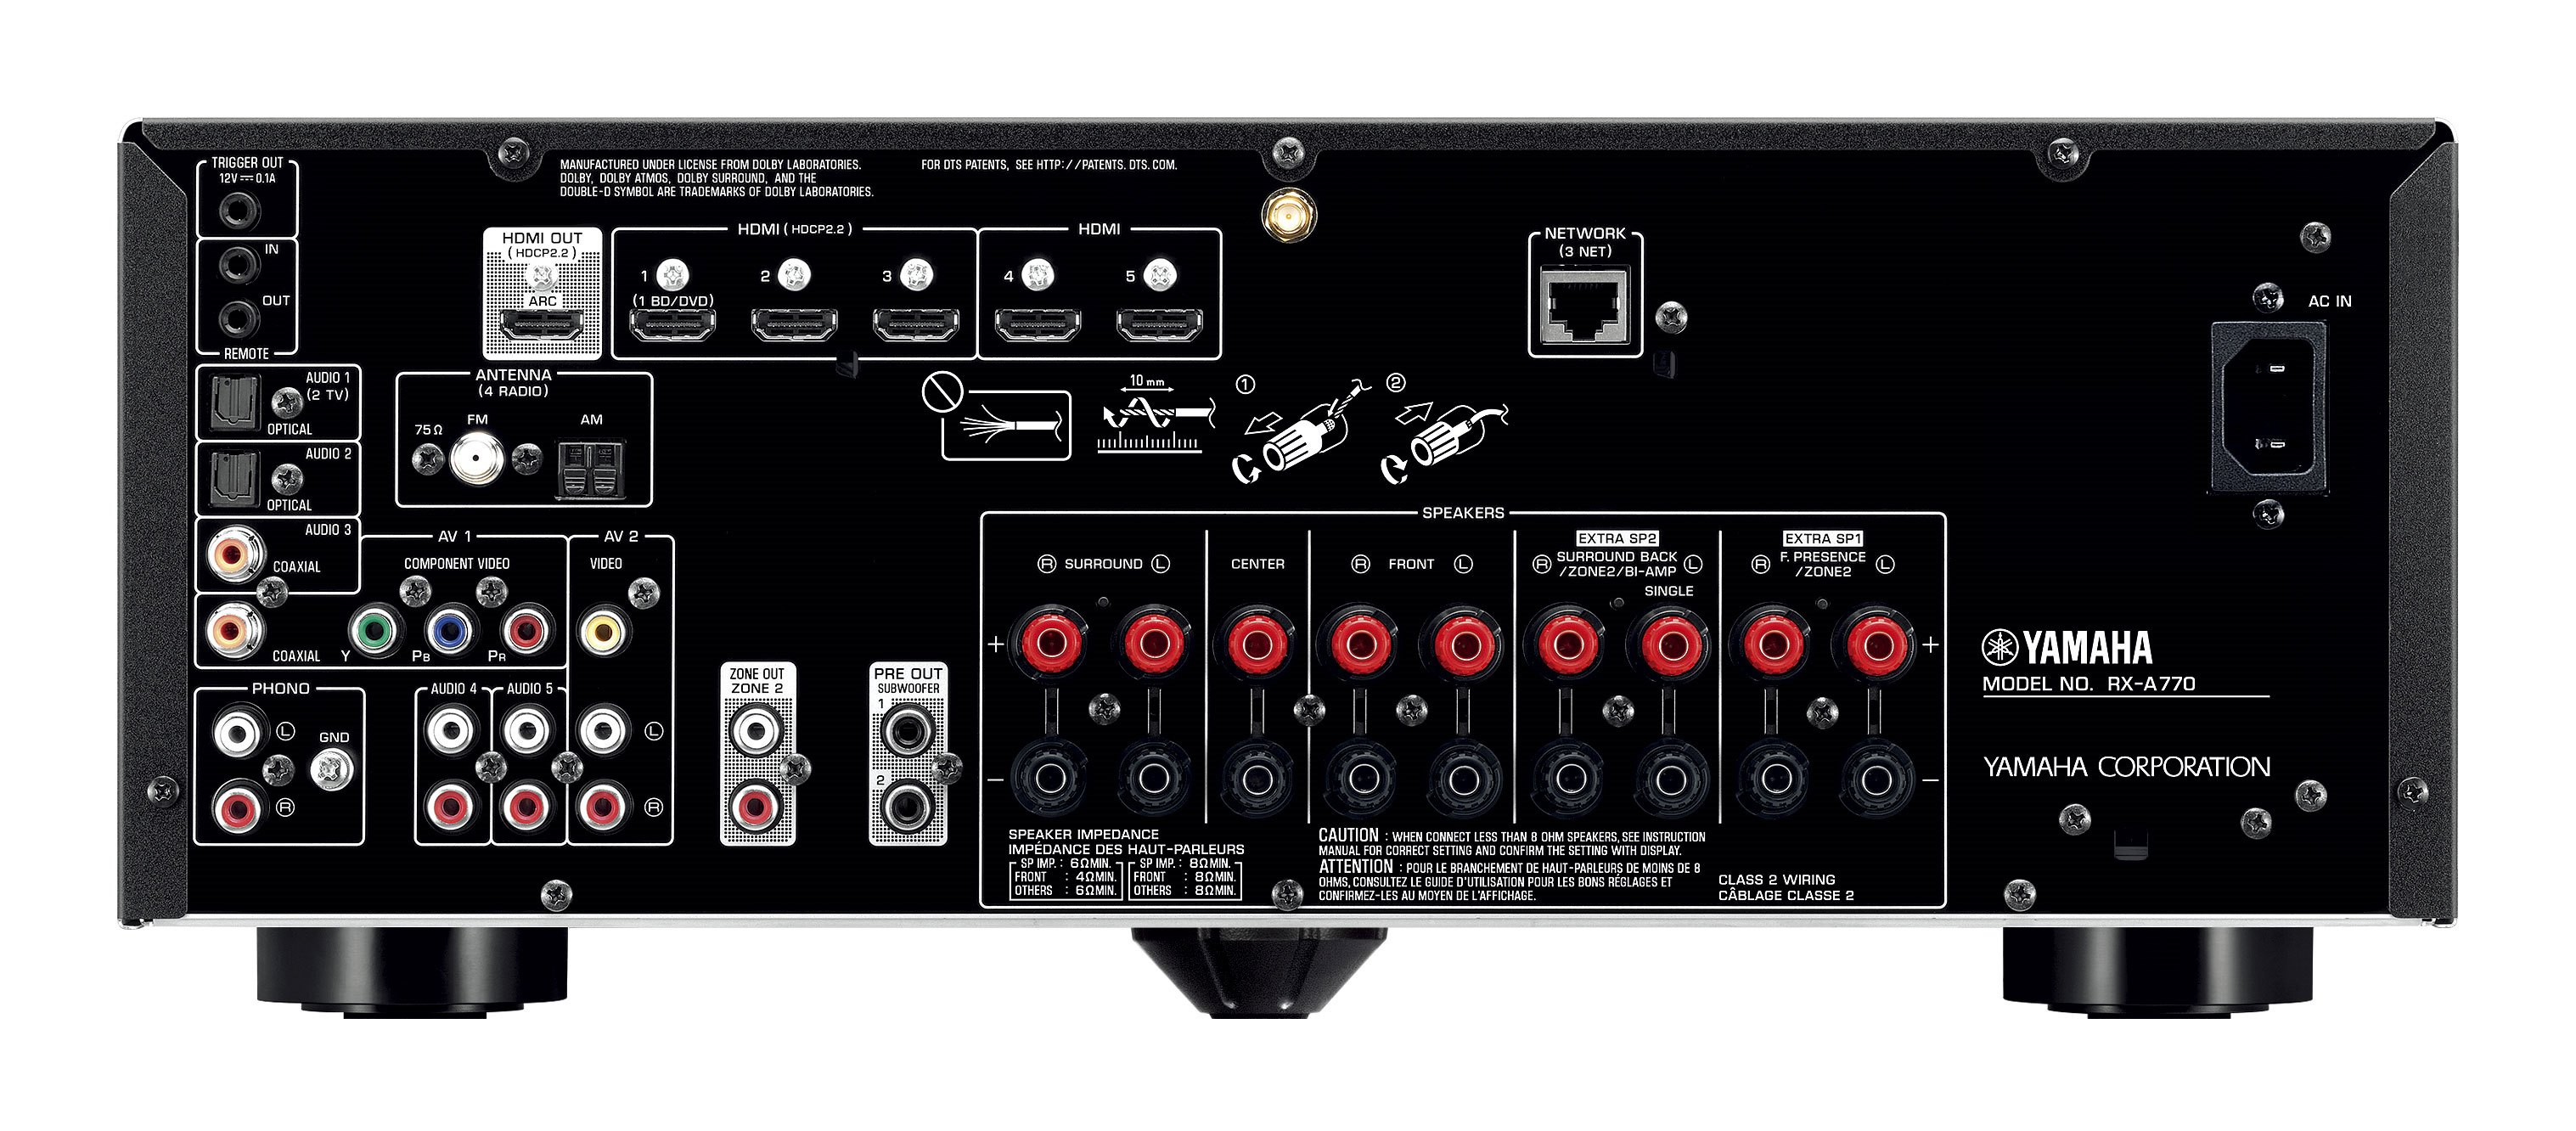 Rx A770 Overview Av Receivers Audio Visual Products Ipad Usb Wiring Diagram Previous